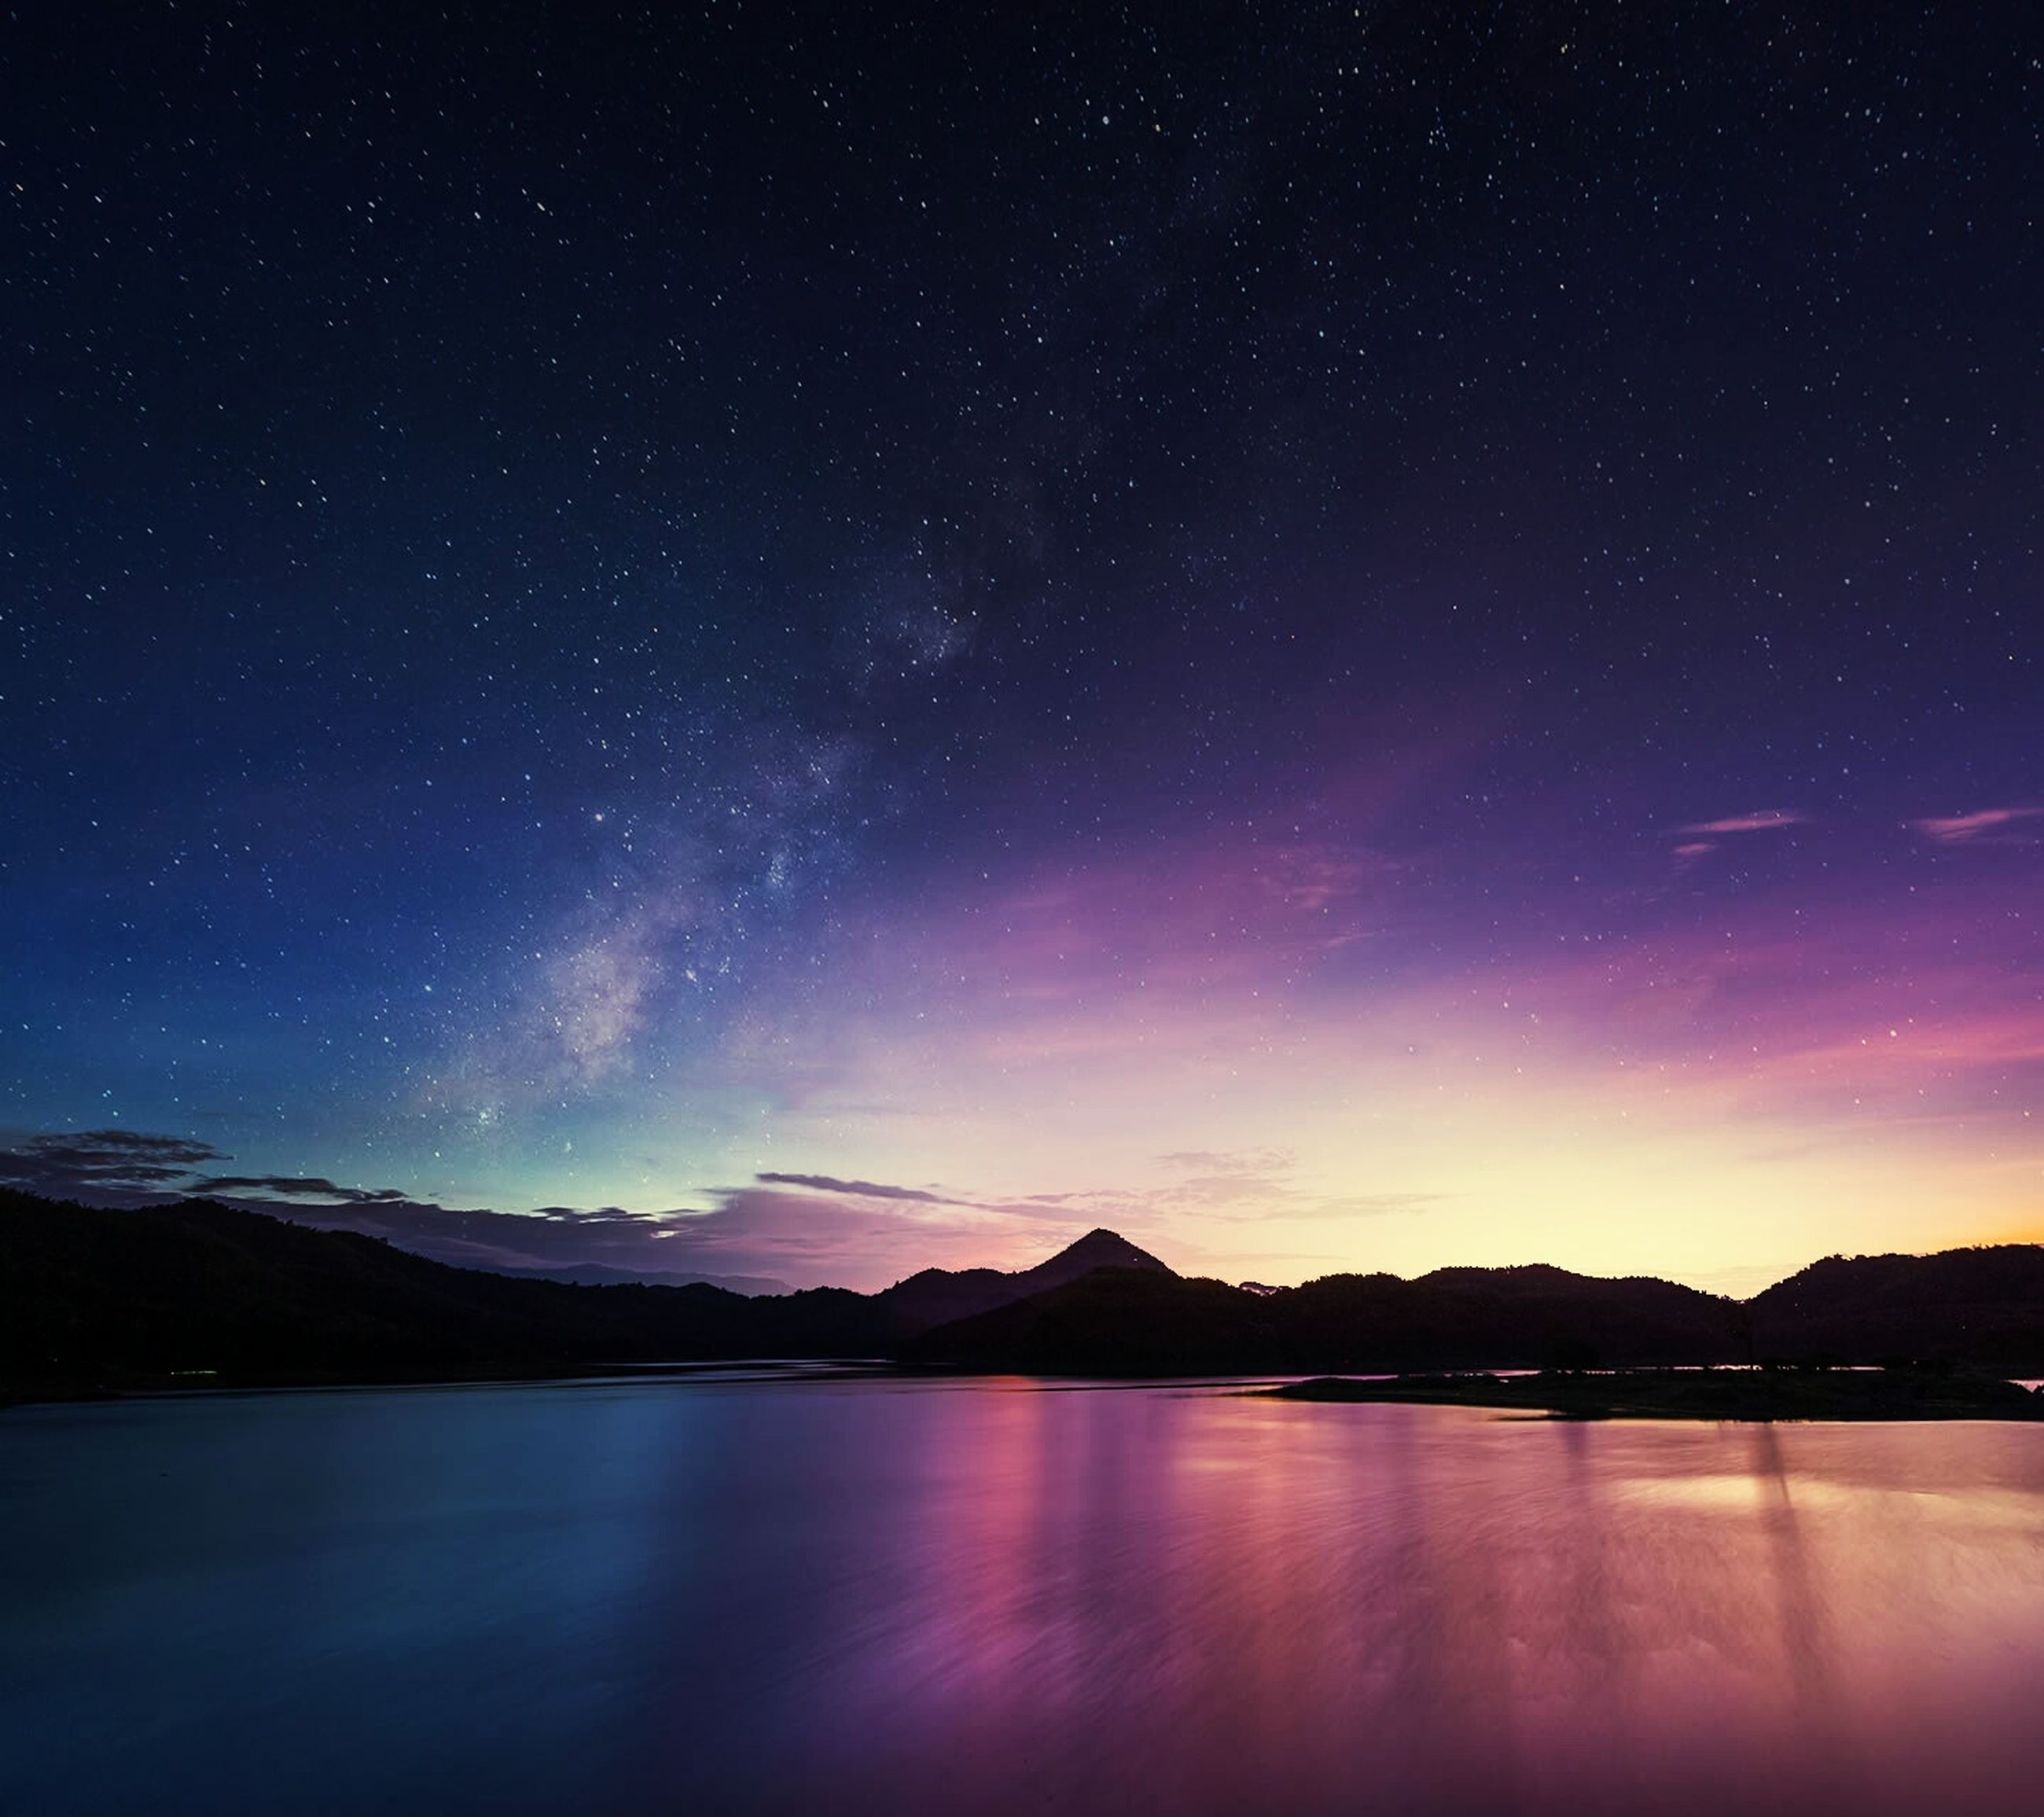 night, scenics, tranquil scene, star - space, tranquility, beauty in nature, star field, astronomy, sky, nature, idyllic, mountain, water, galaxy, majestic, star, space, lake, mountain range, reflection